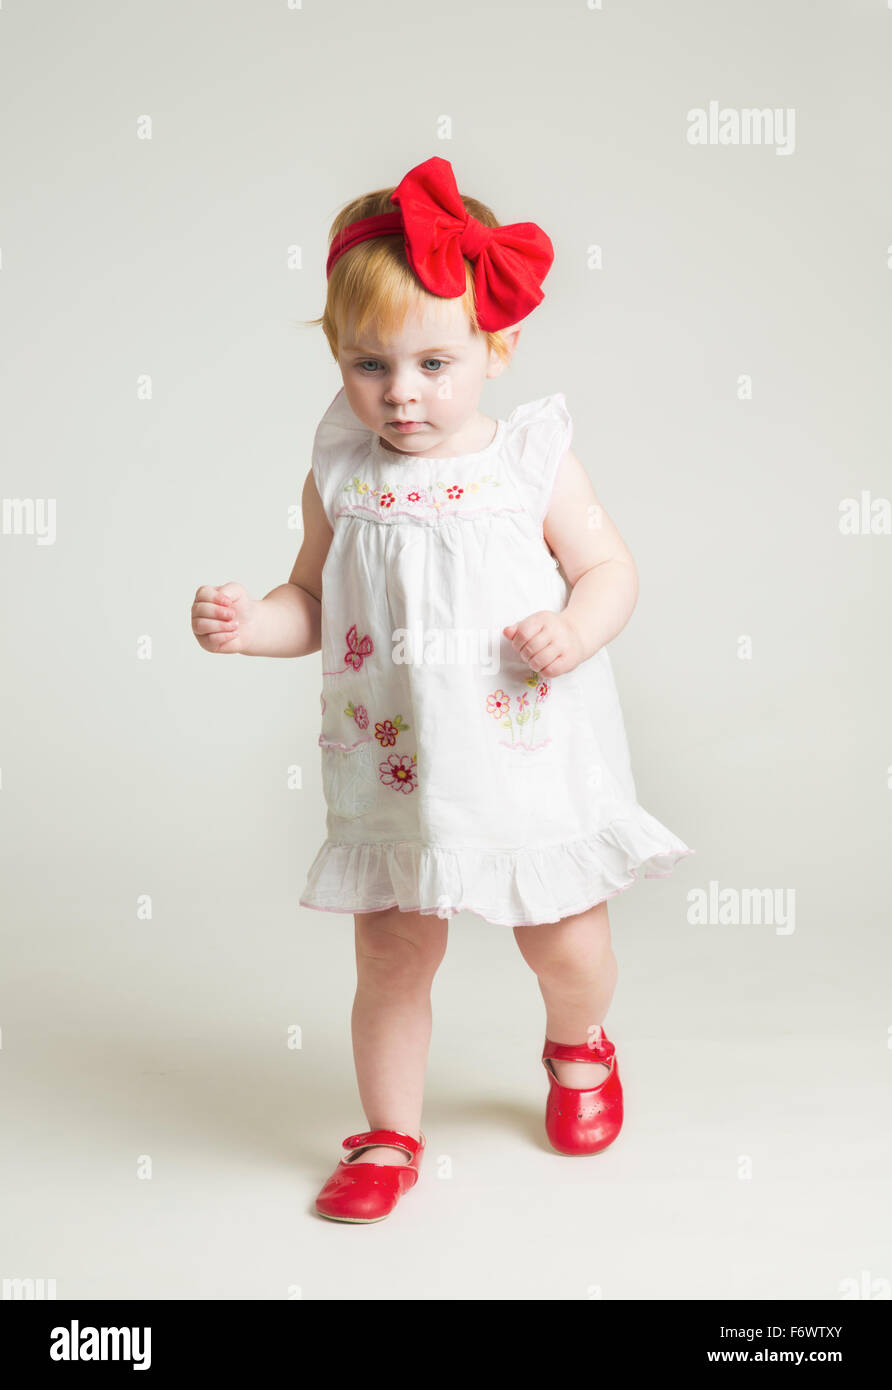 A cute little one year old girl learning to walk in red shoes and bow - 13c0384b26